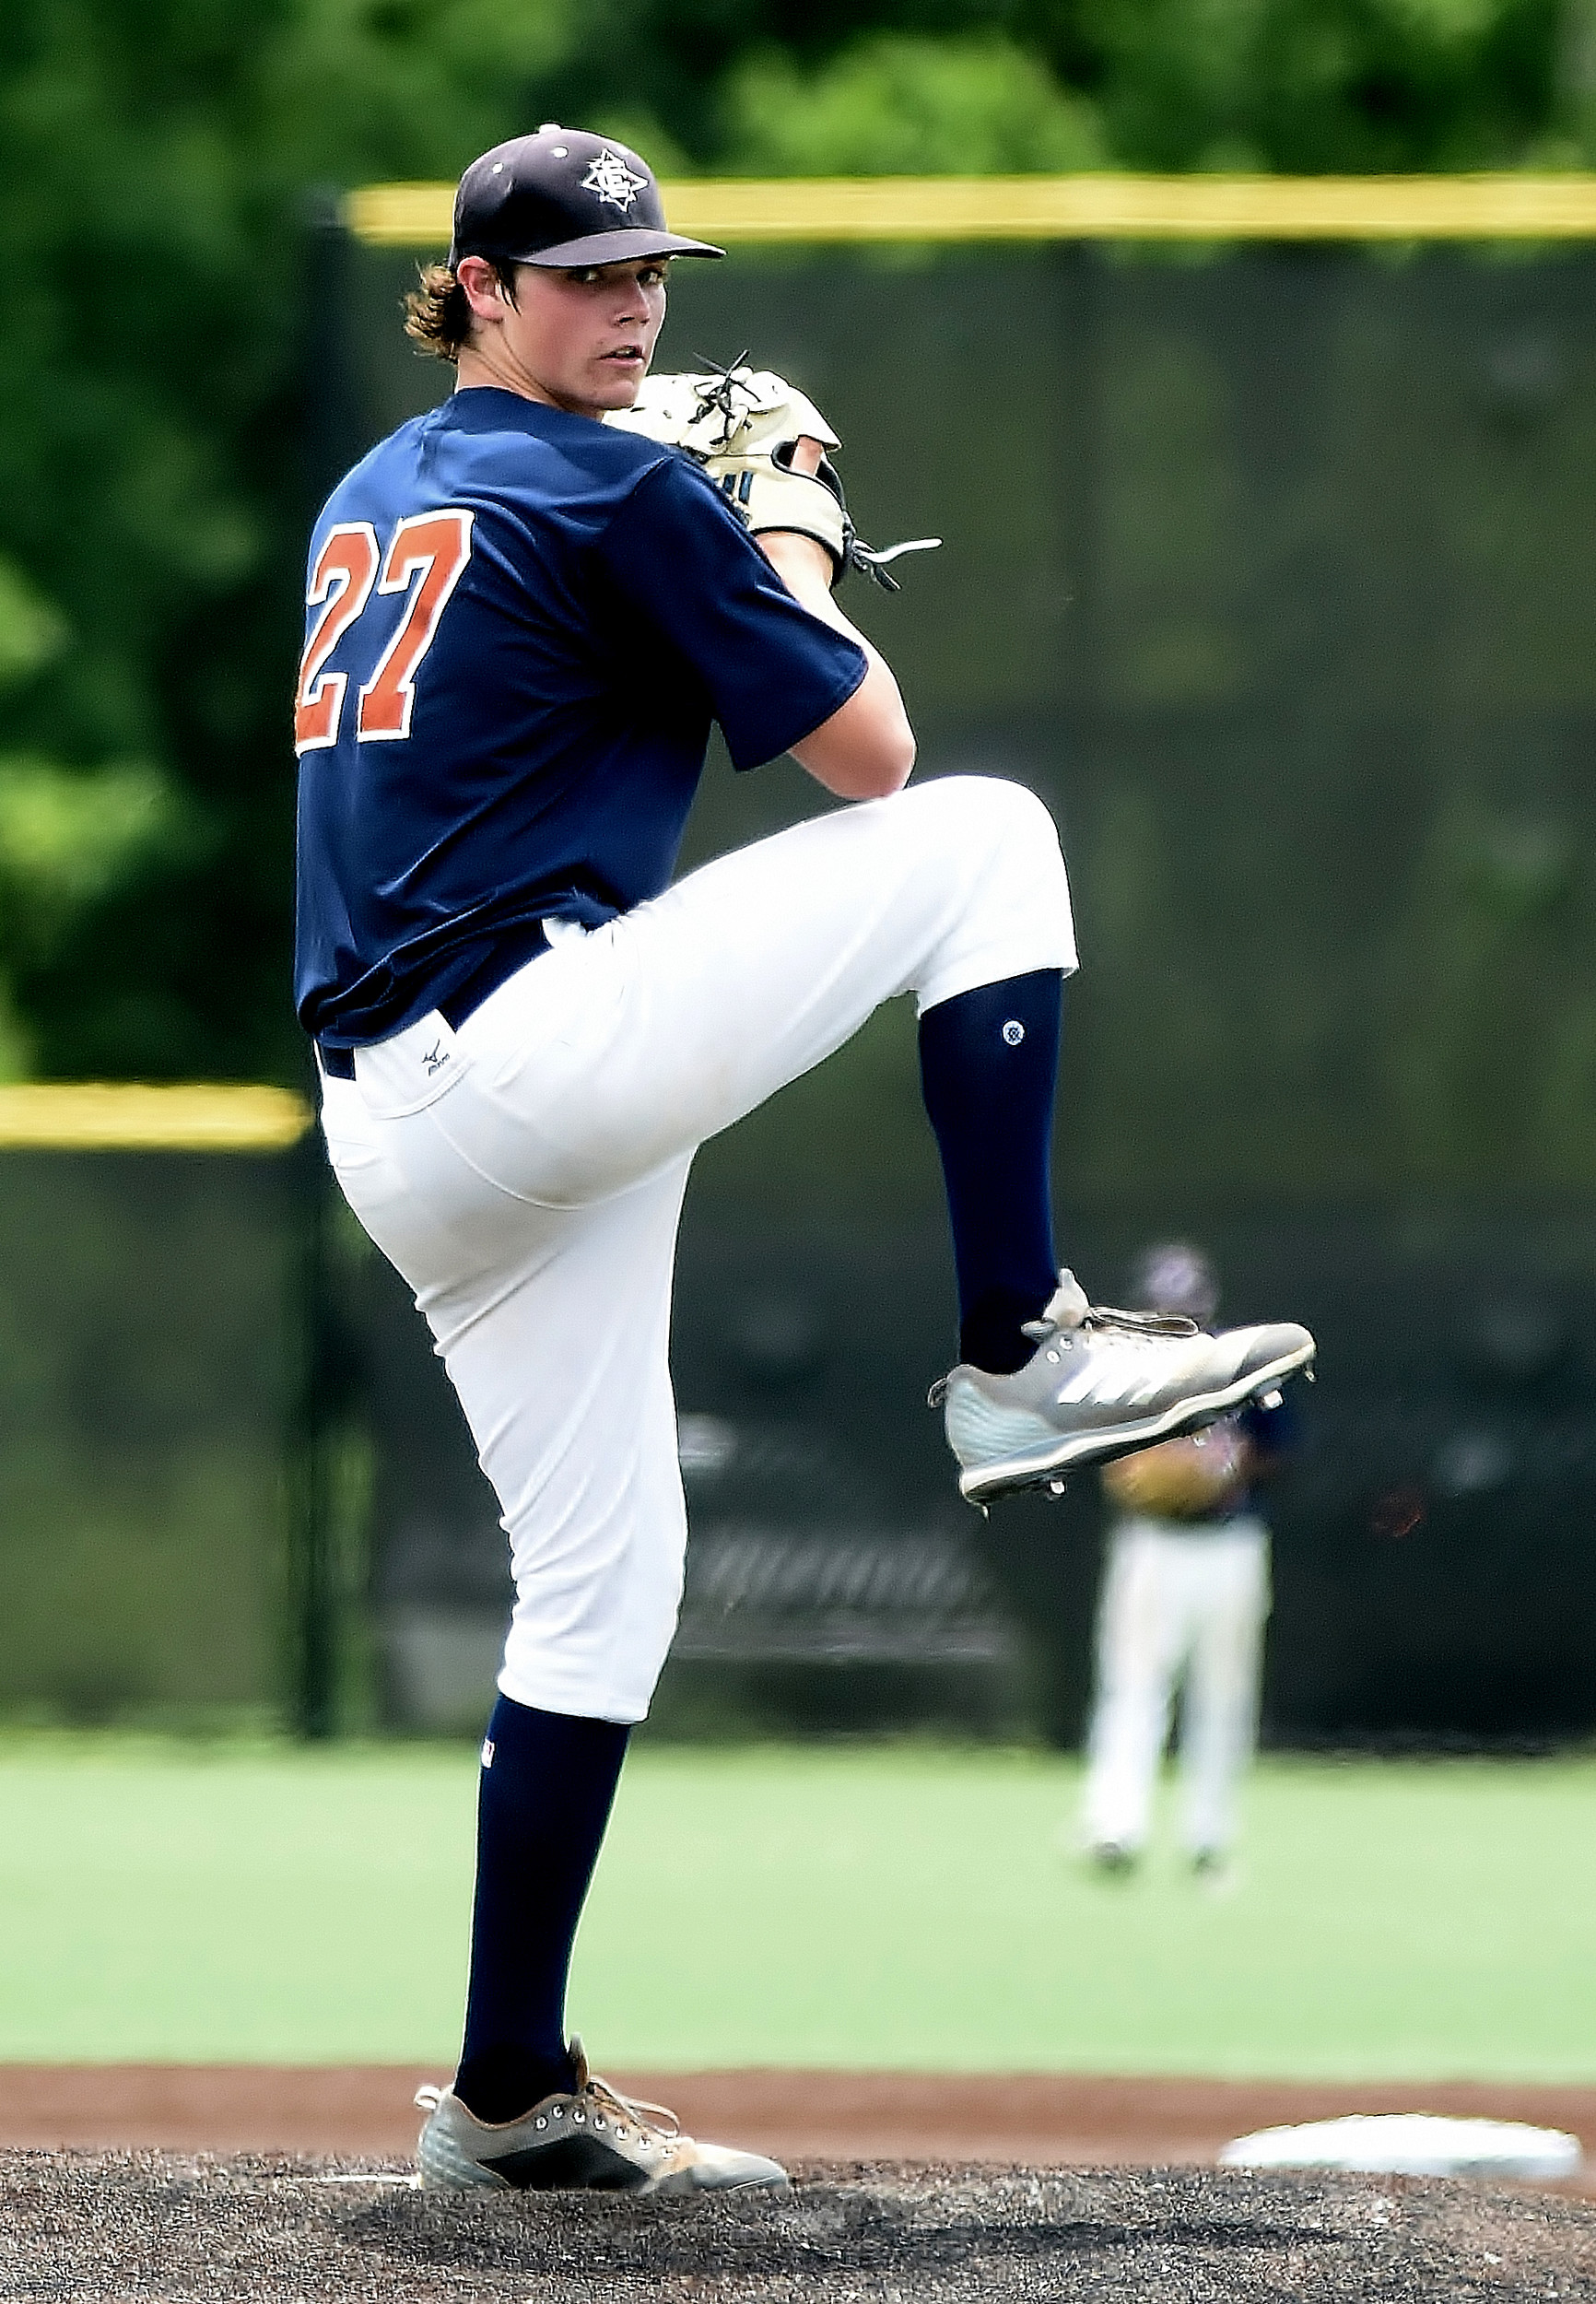 Florida commit Hunter Barco pitches for the East Cobb Astros during a pool-play game in the 2018 WWBA 17U National Championship on Monday at LakePoint.